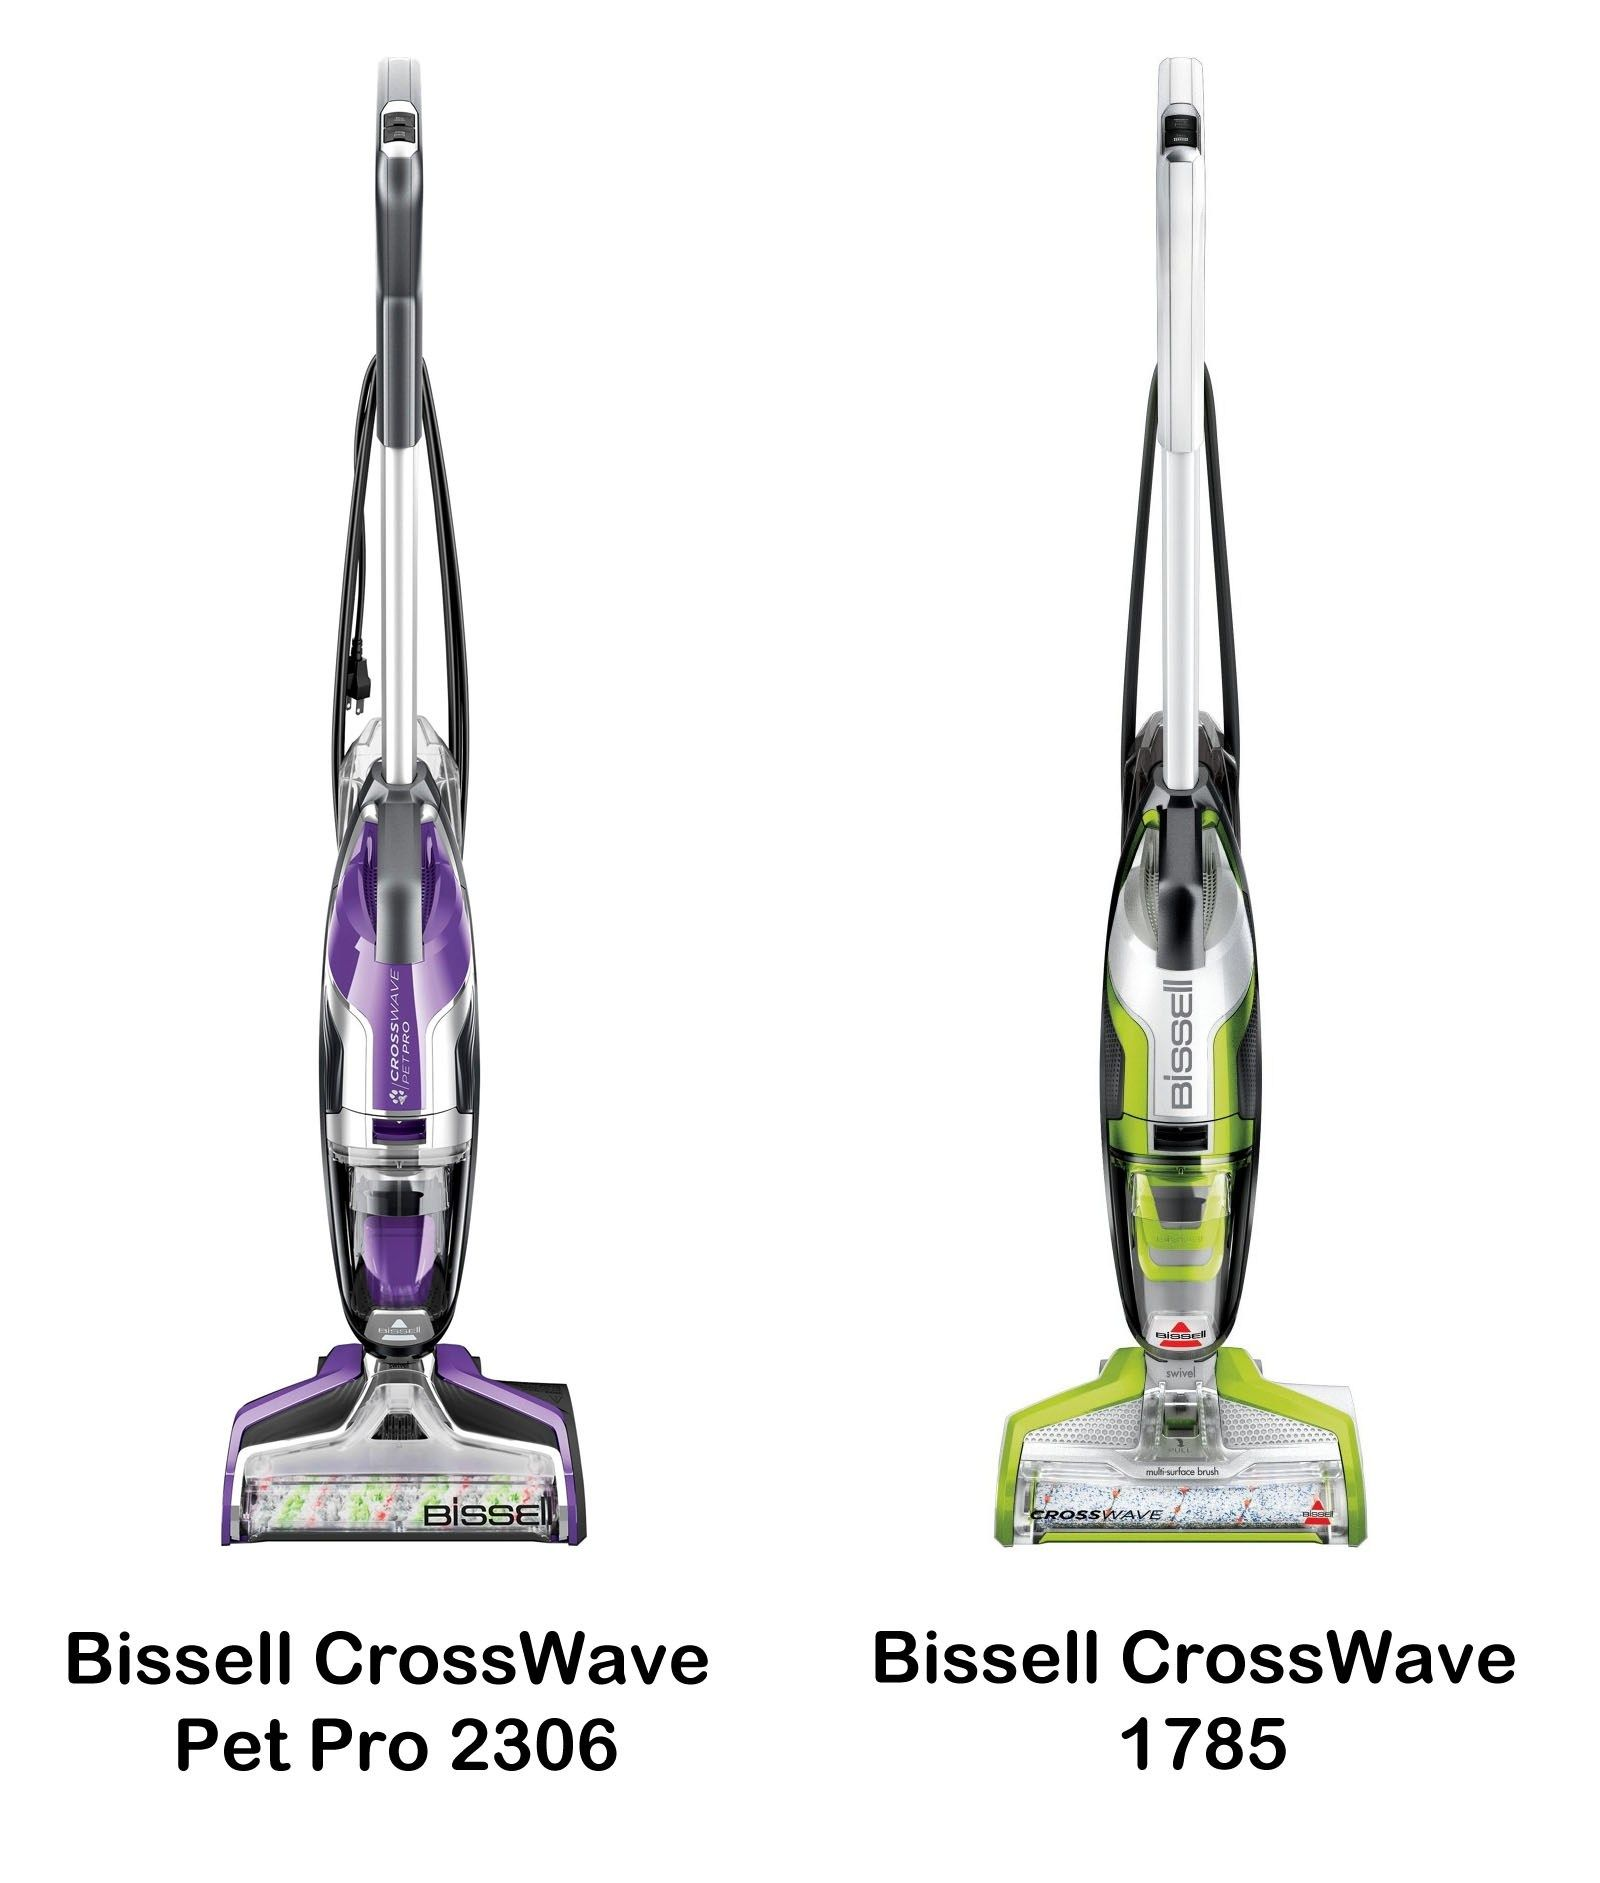 BISSELL CrossWave Pet Pro an upgrade to a classic